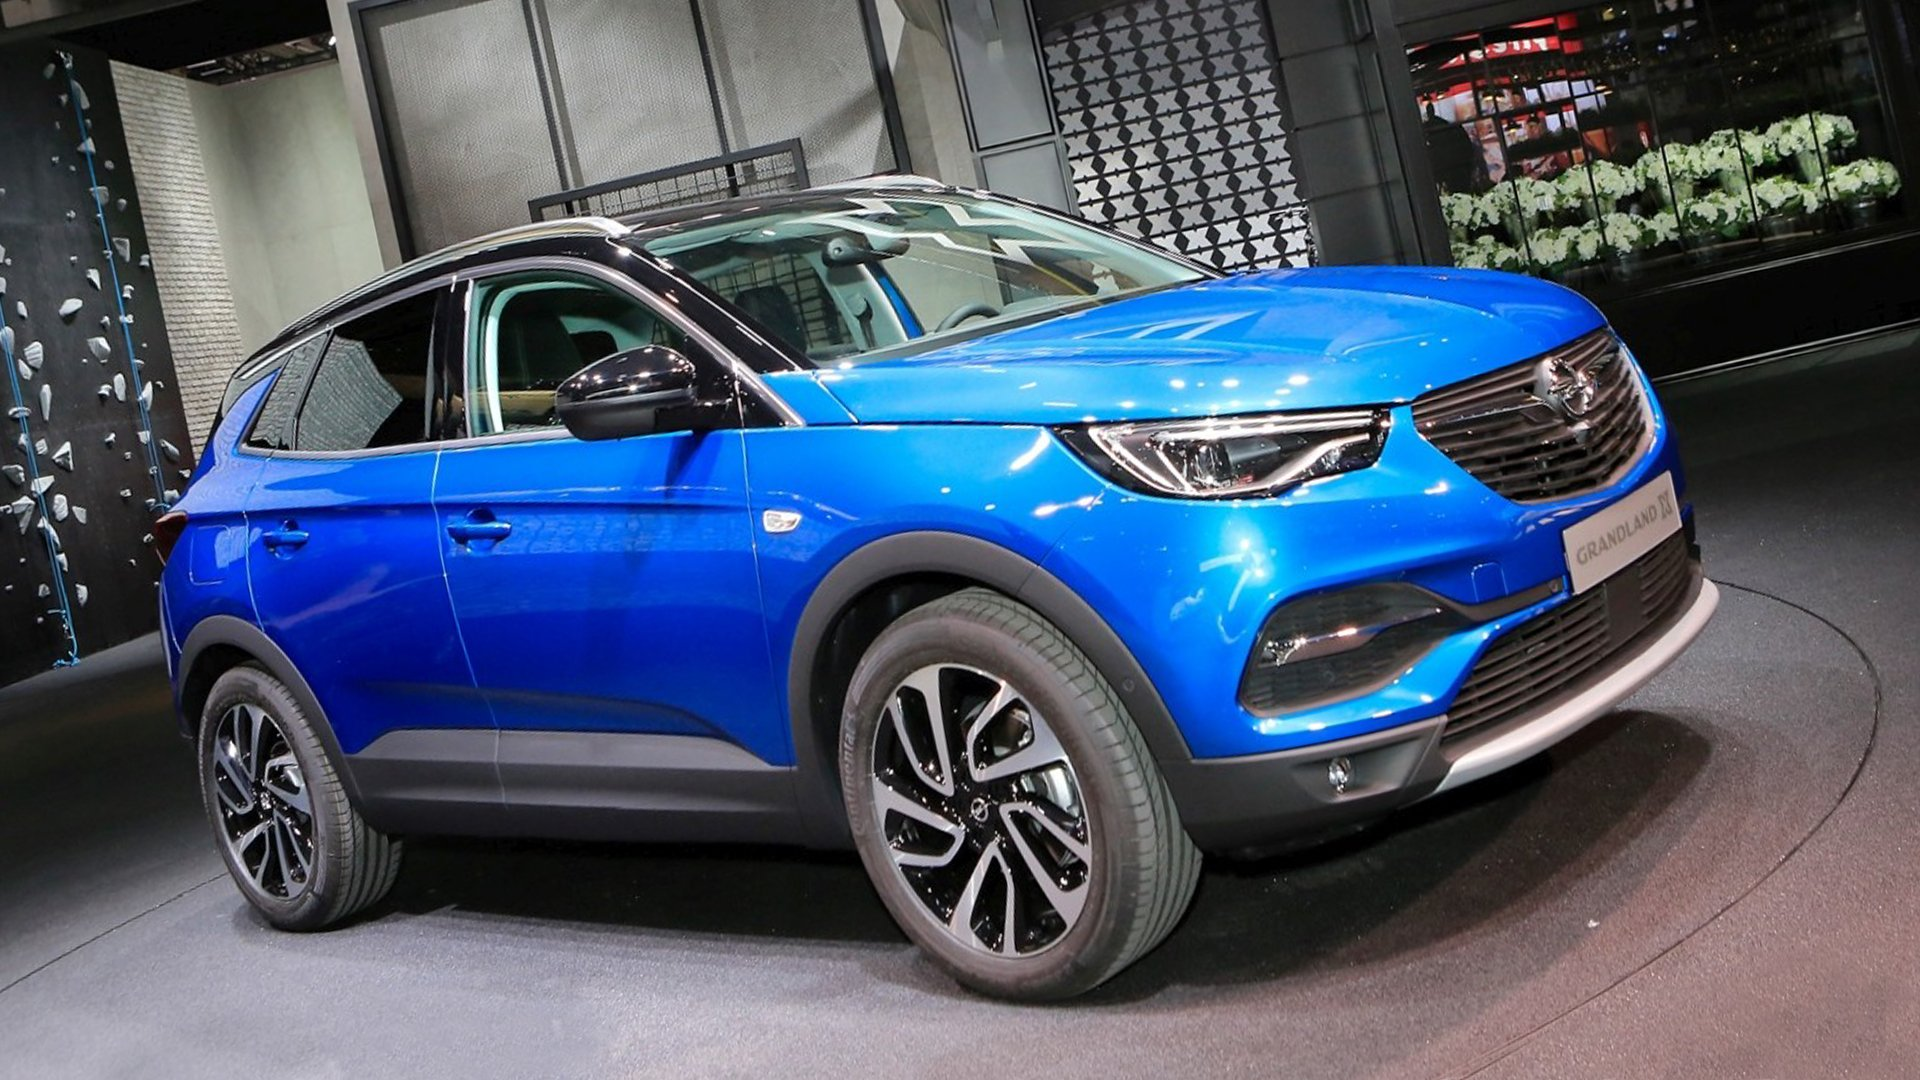 New 2019 Opel Grandland X First Pictures